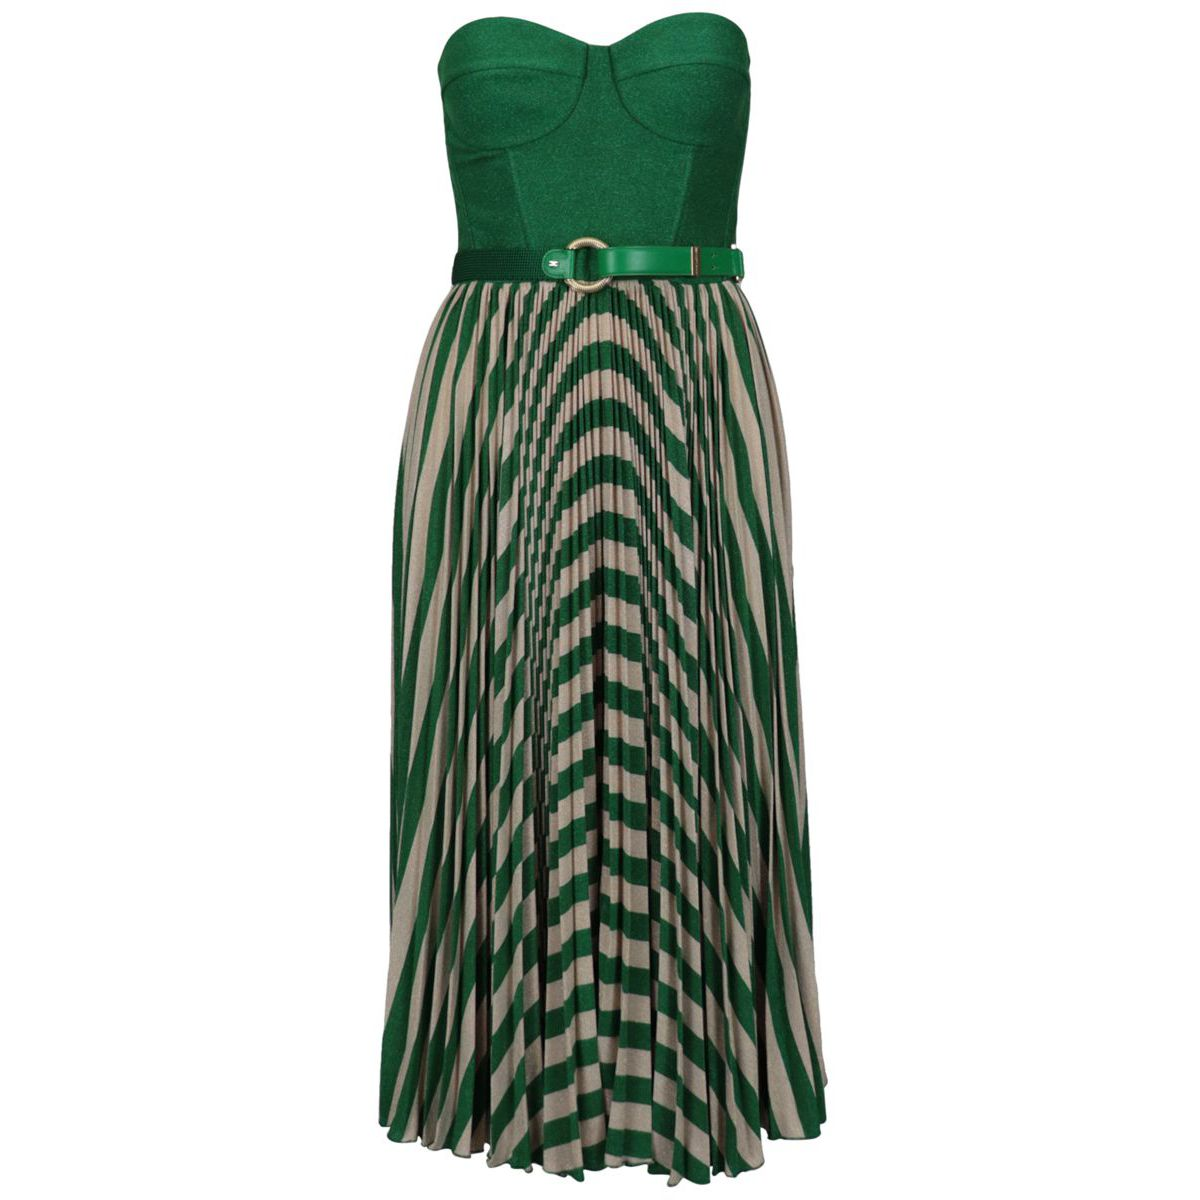 Laminated jersey dress with pleated skirt Mint Elisabetta Franchi